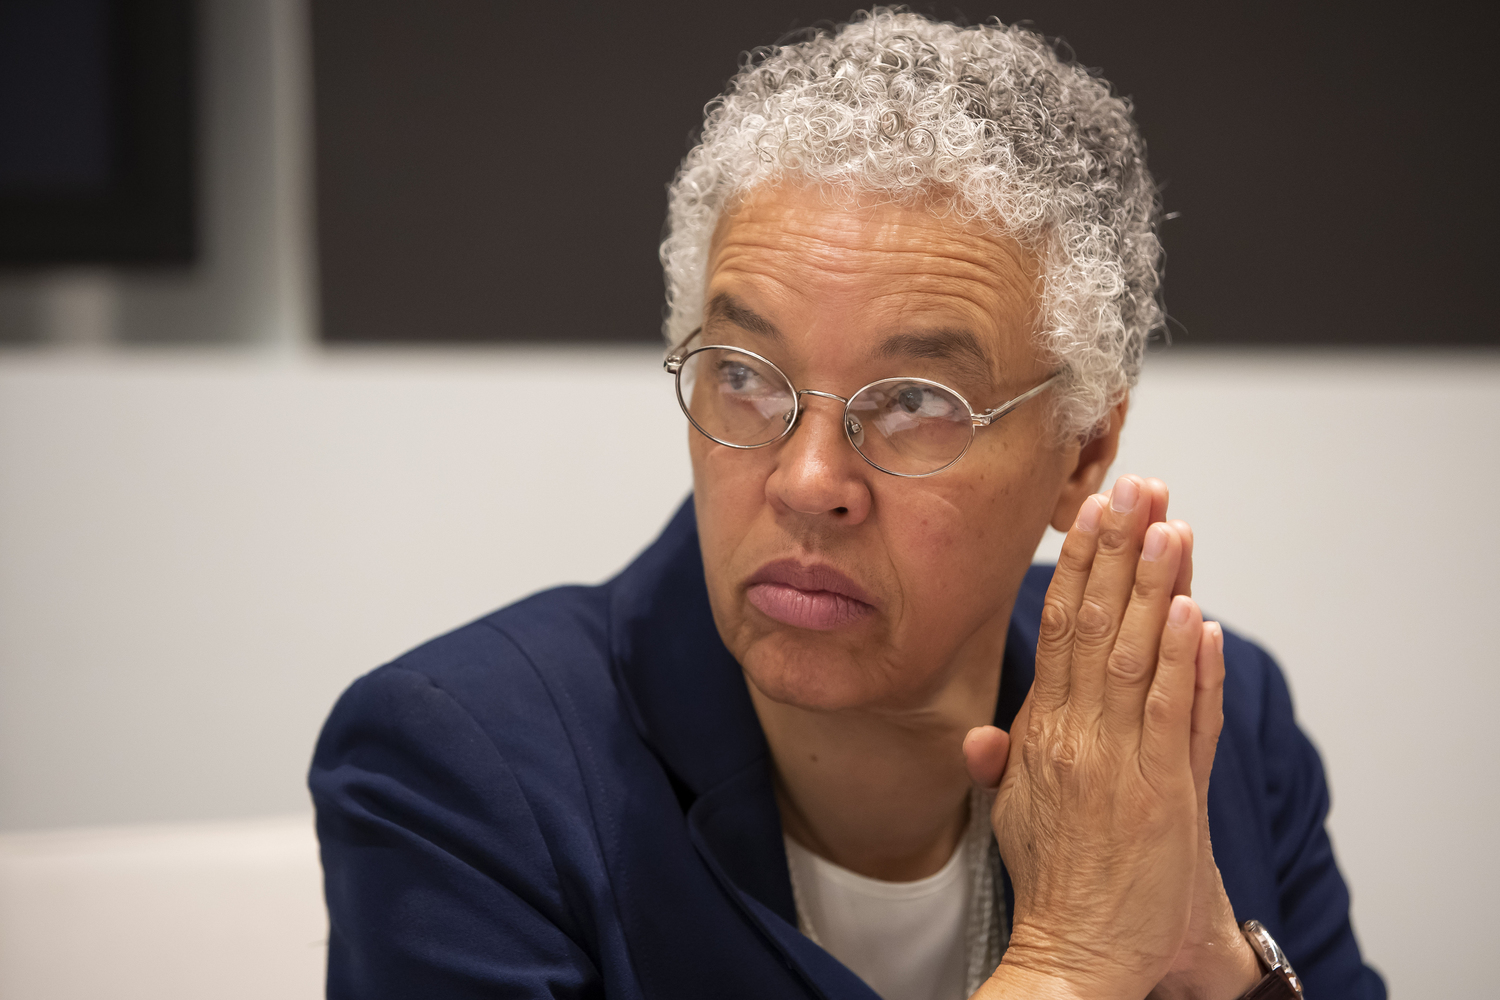 Cook County Board President Toni Preckwinkle also gave raises to her security detail in late 2014, when the guards were moved from the Cook County sheriff's police to her control.